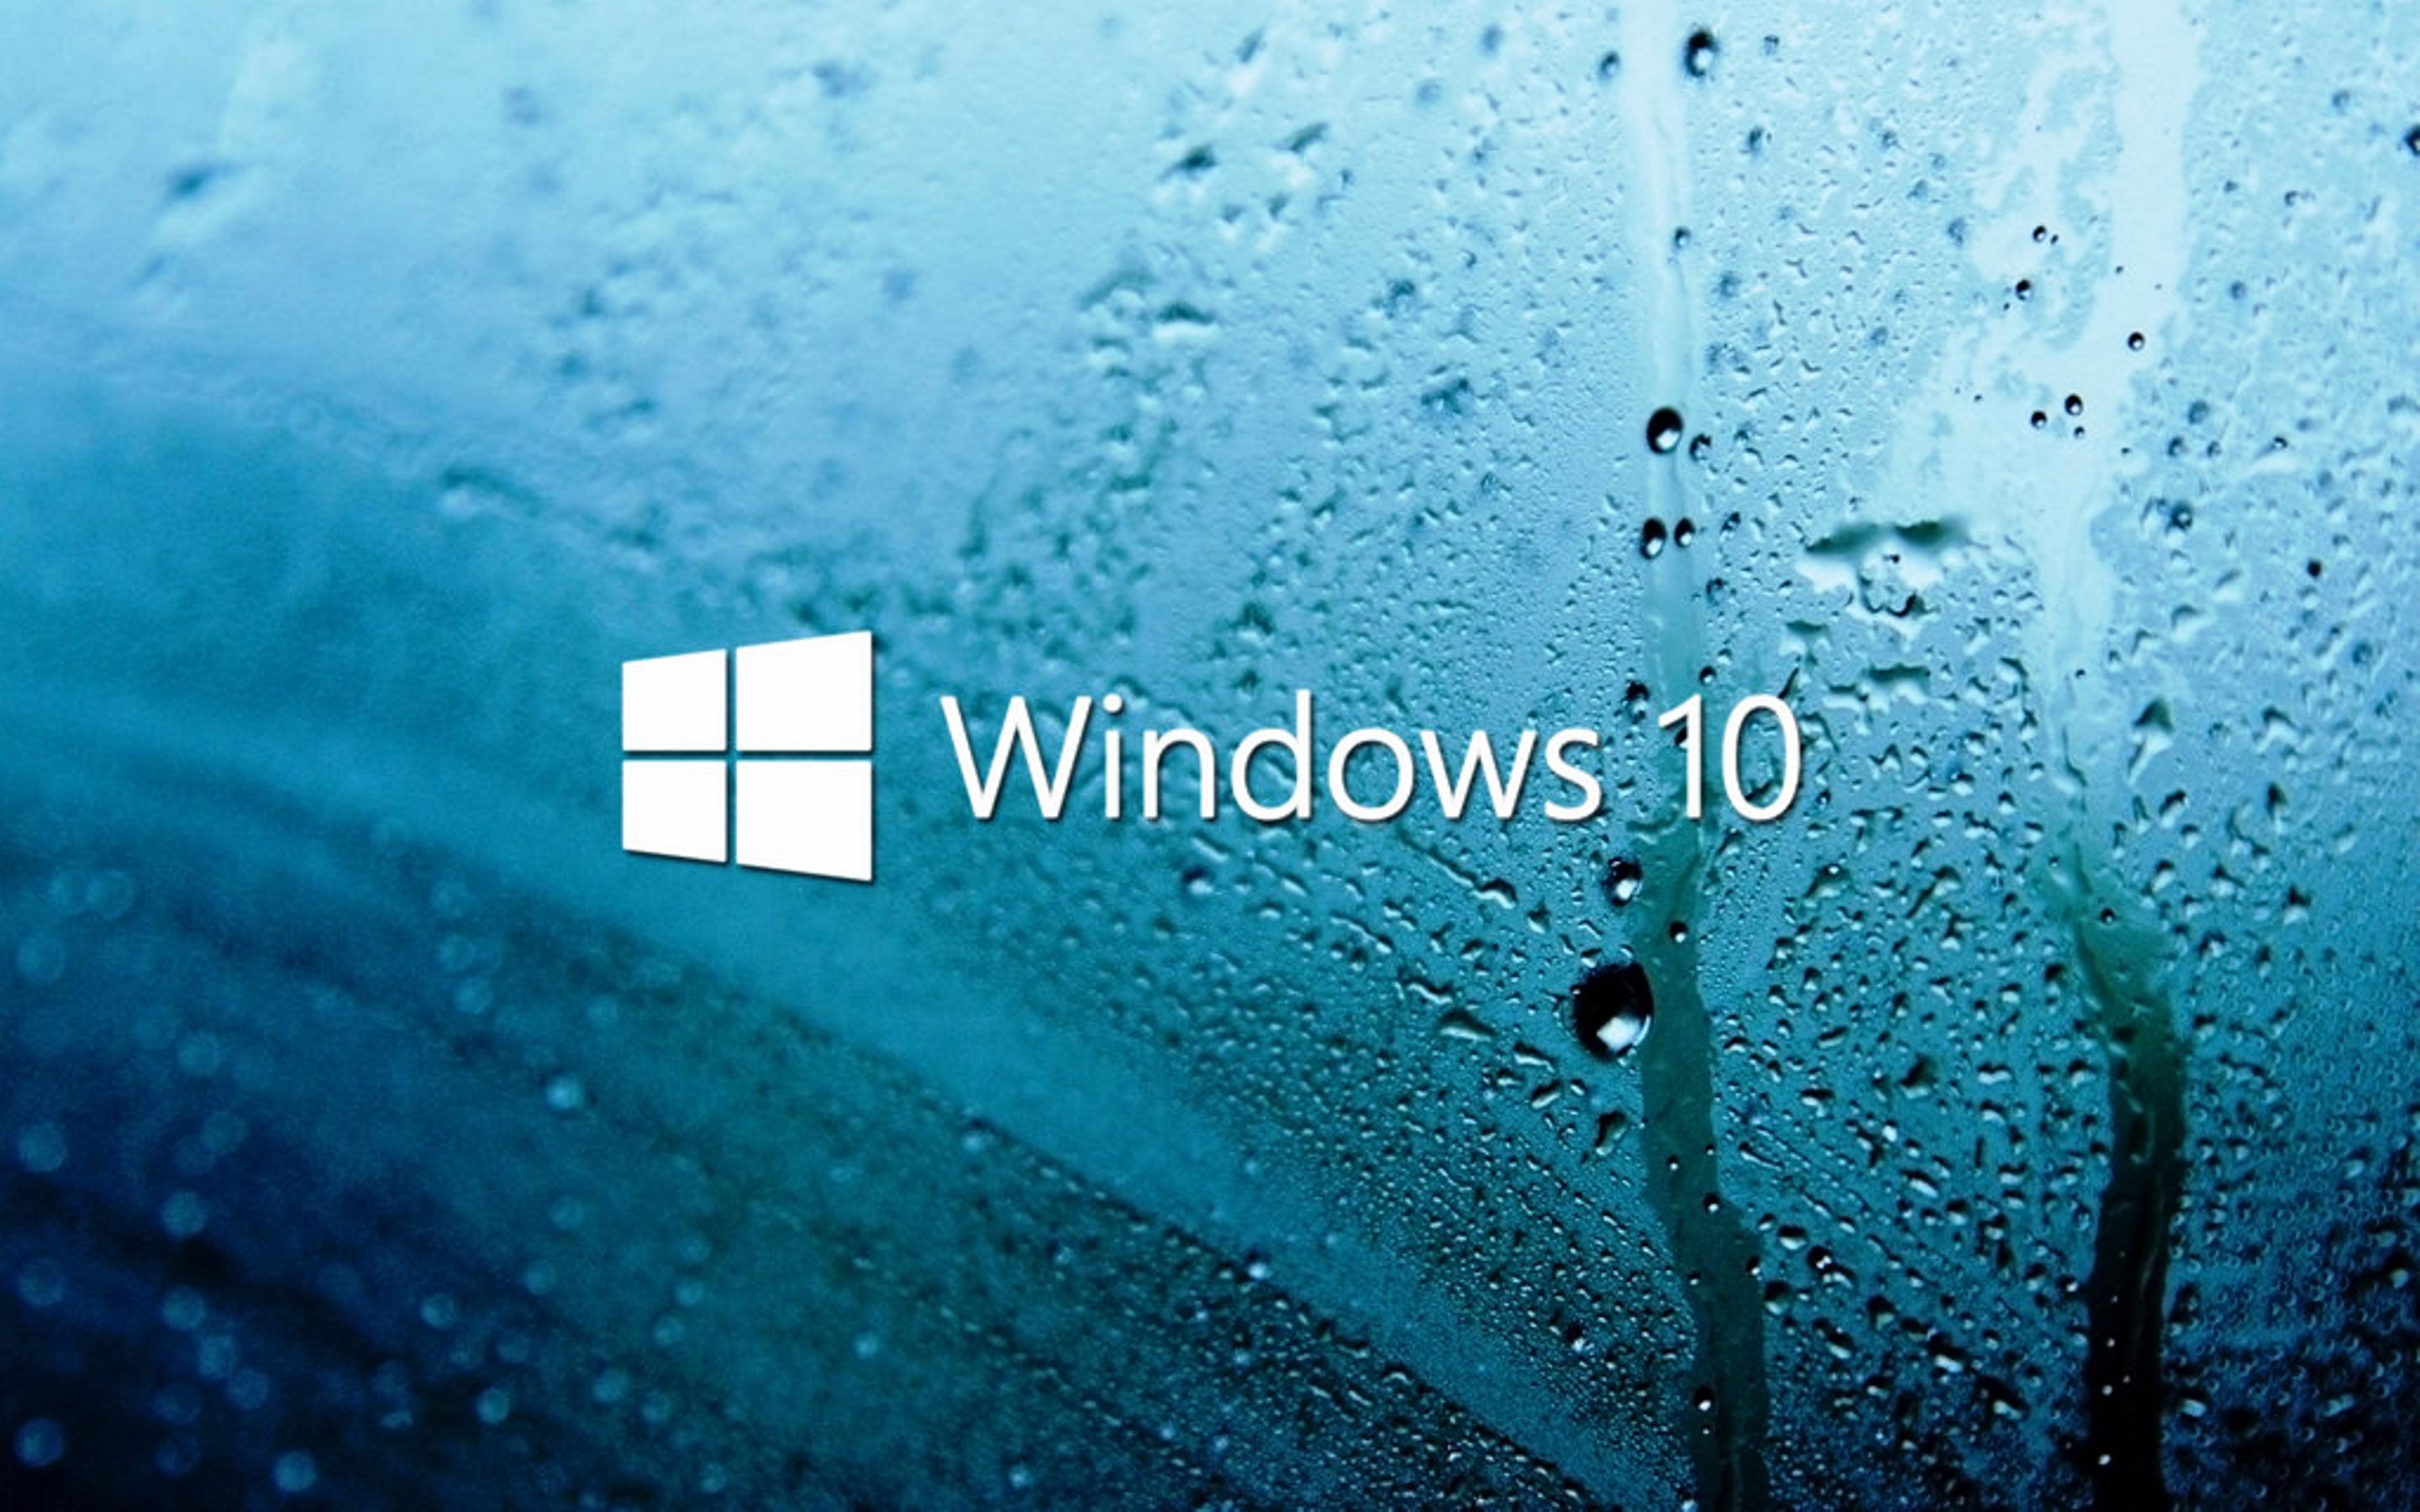 Image For Windows 10 Computer HD Wallpaper